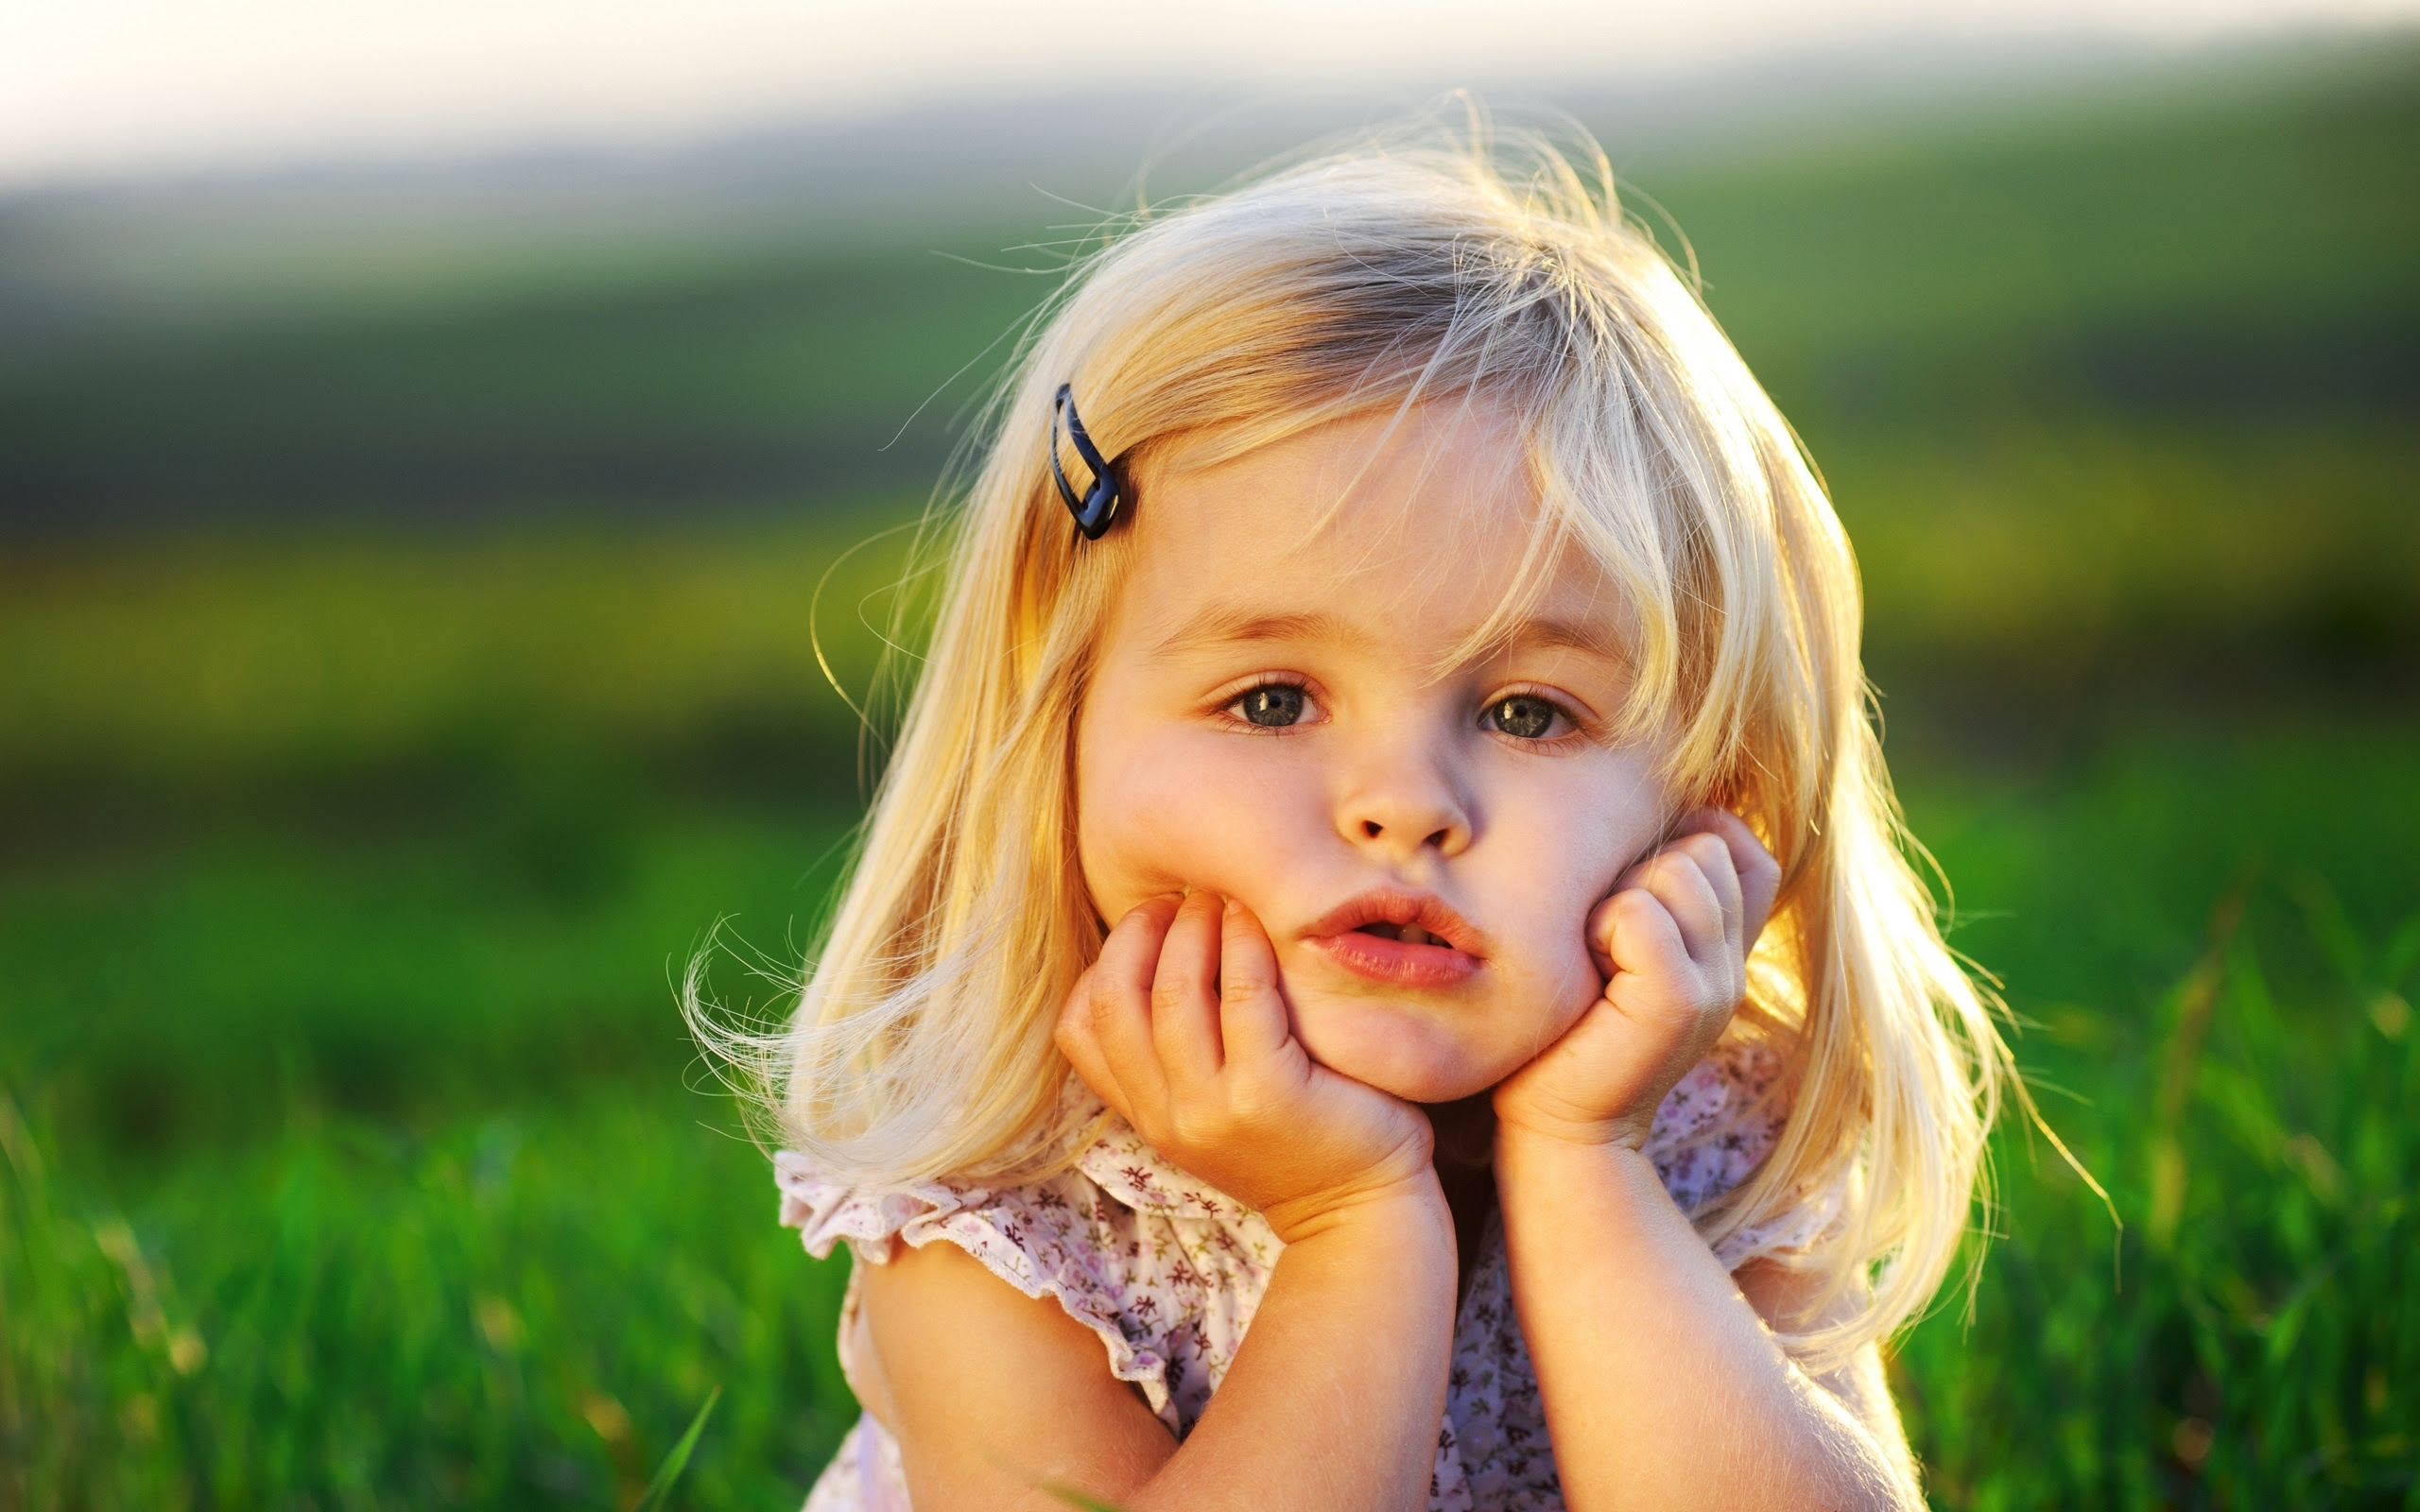 Cute Little Baby Girl Wallpapers In Jpg Format For Free Download